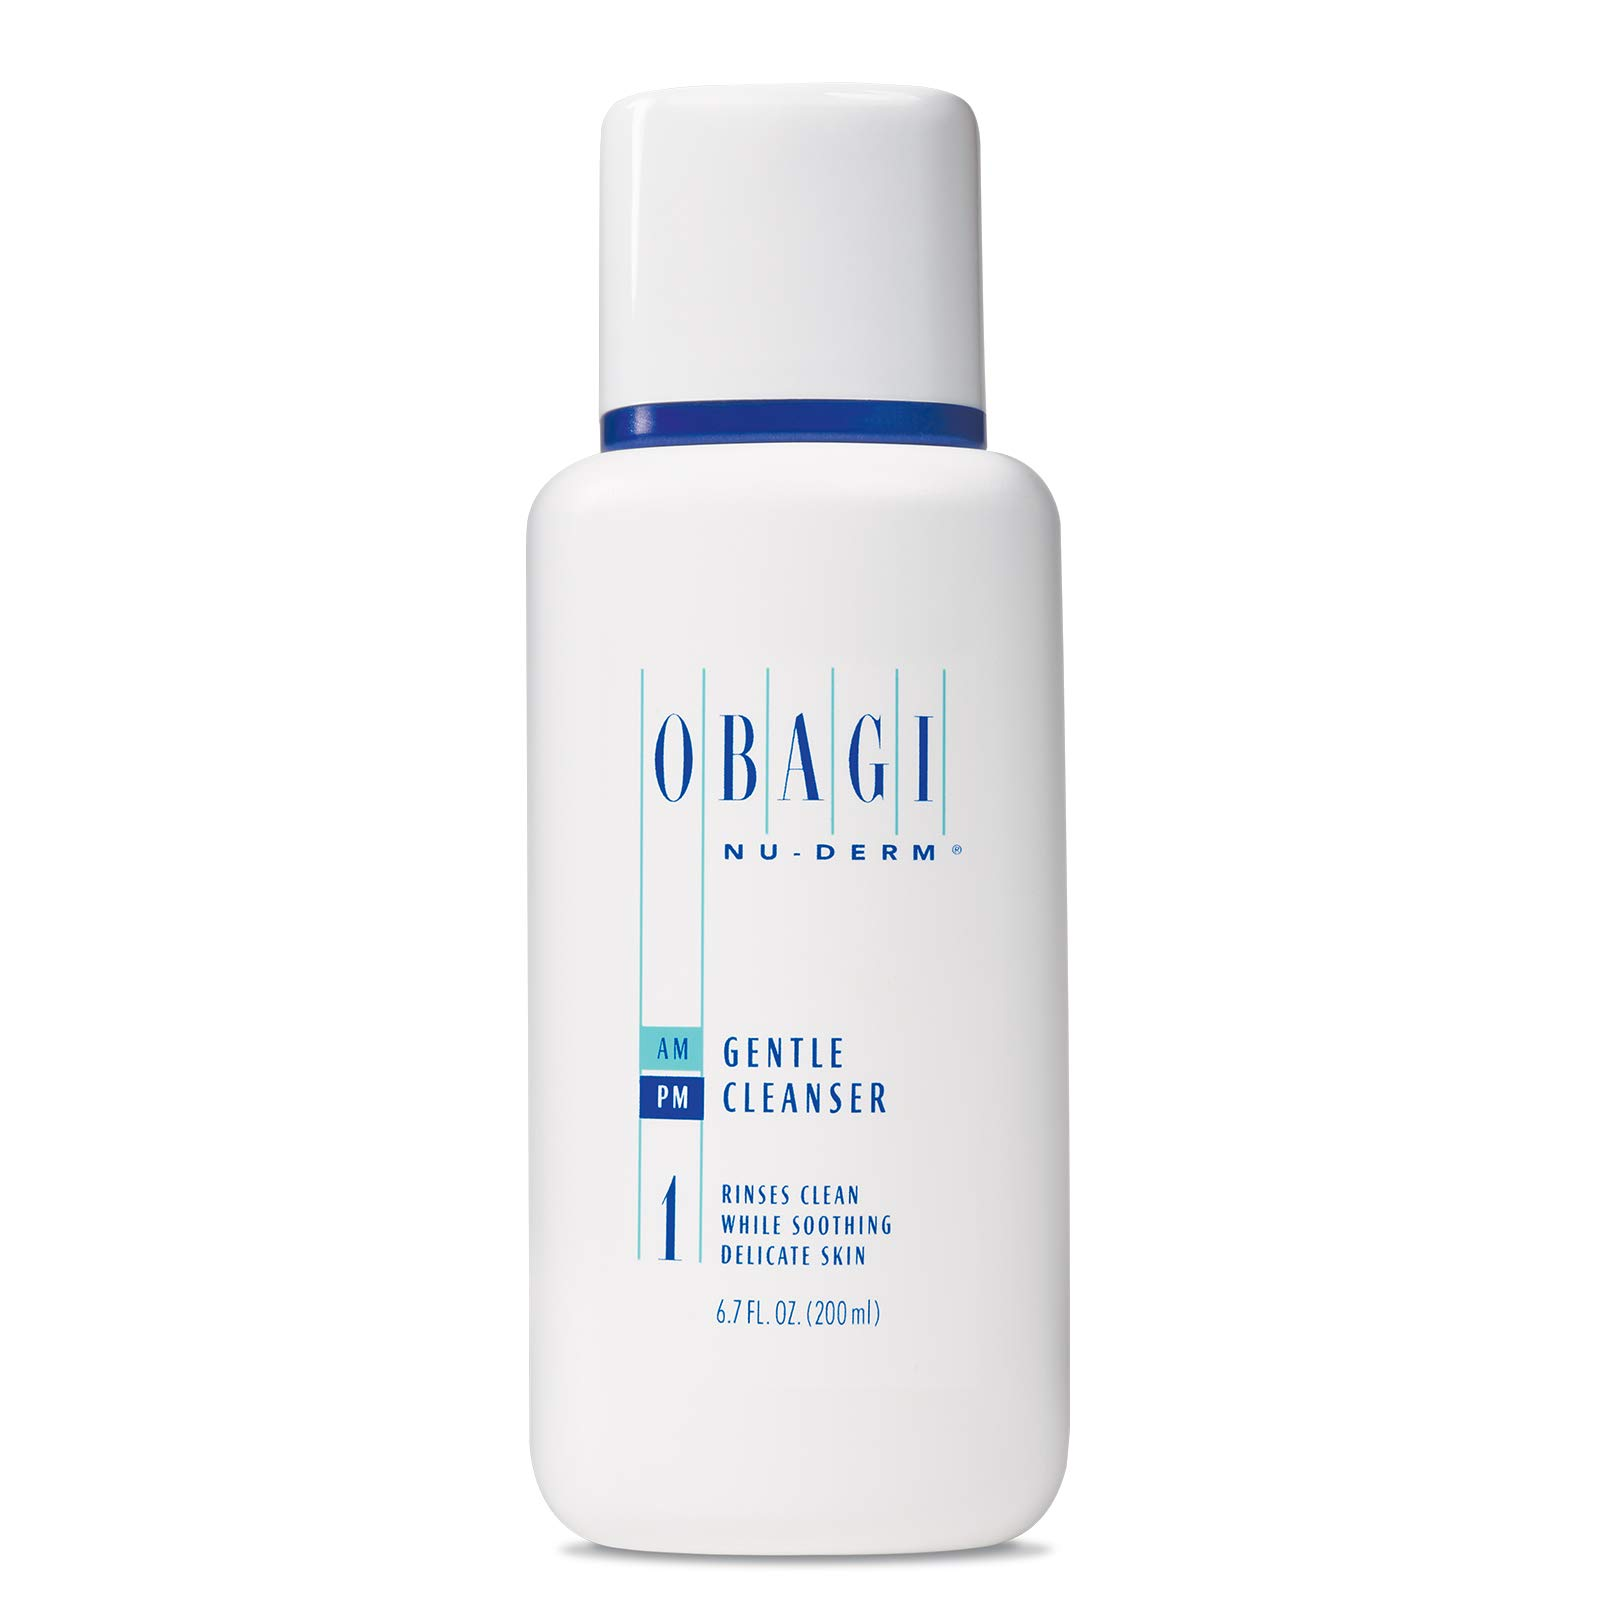 Obagi Medical Nu-Derm Gentle Face Cleanser for Normal to Dry Skin, Daily Facial Cleanser Gently Removes Dirt, Oil, Makeup, and impurities, 6.7 Fl Oz Pack of 1